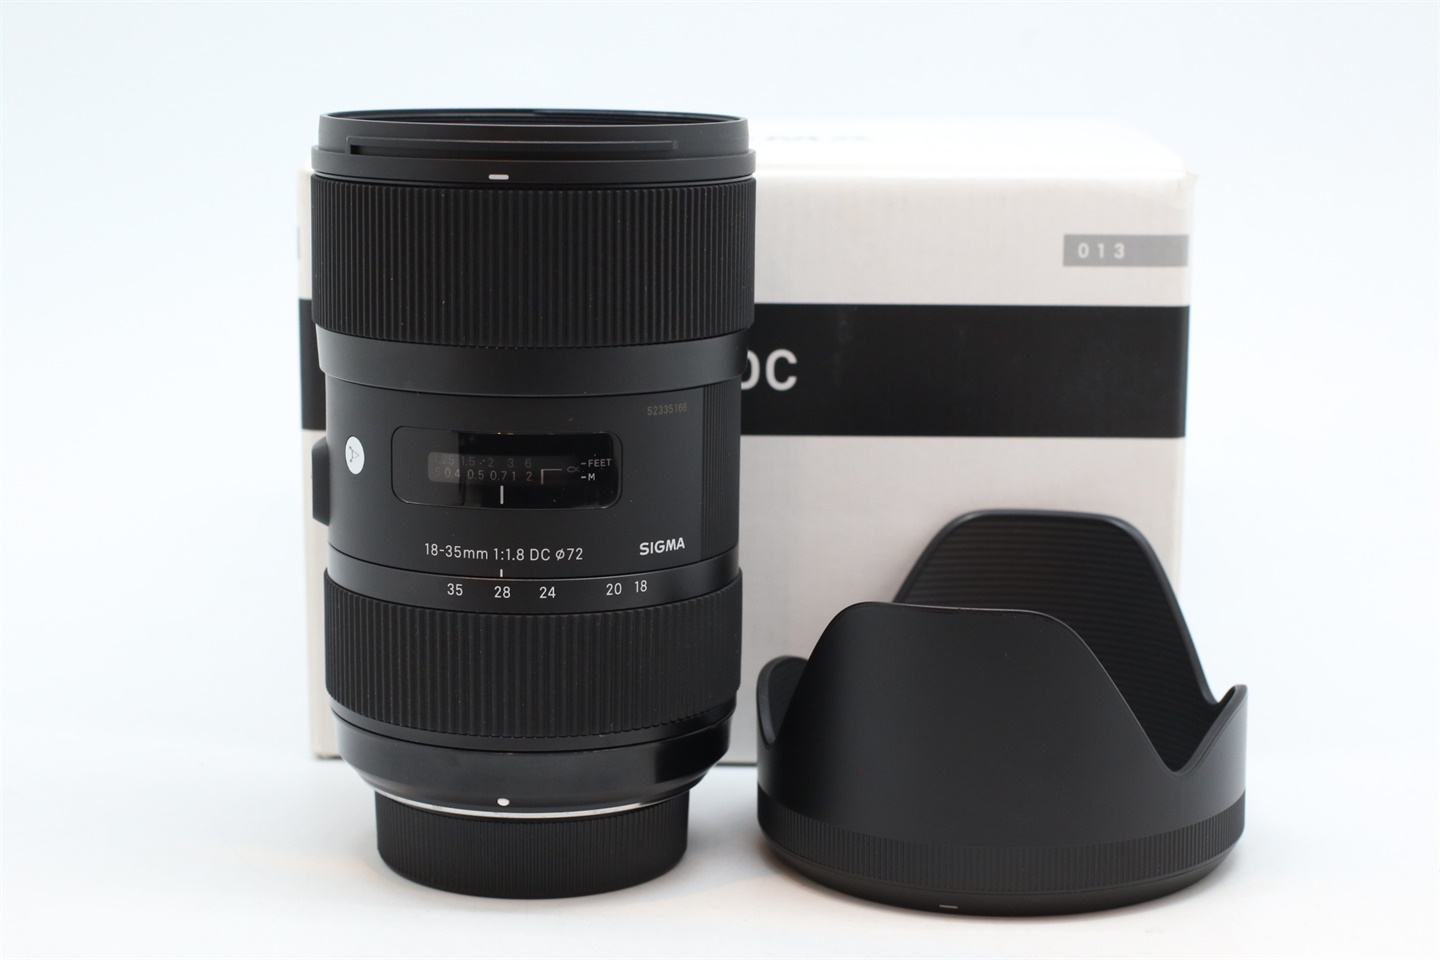 [USED-PUDU] SIGMA 18-35MM F1.8 DC ART FOR NIKON MOUNT 95%LIKE NEW CONDITION  SN:5038884